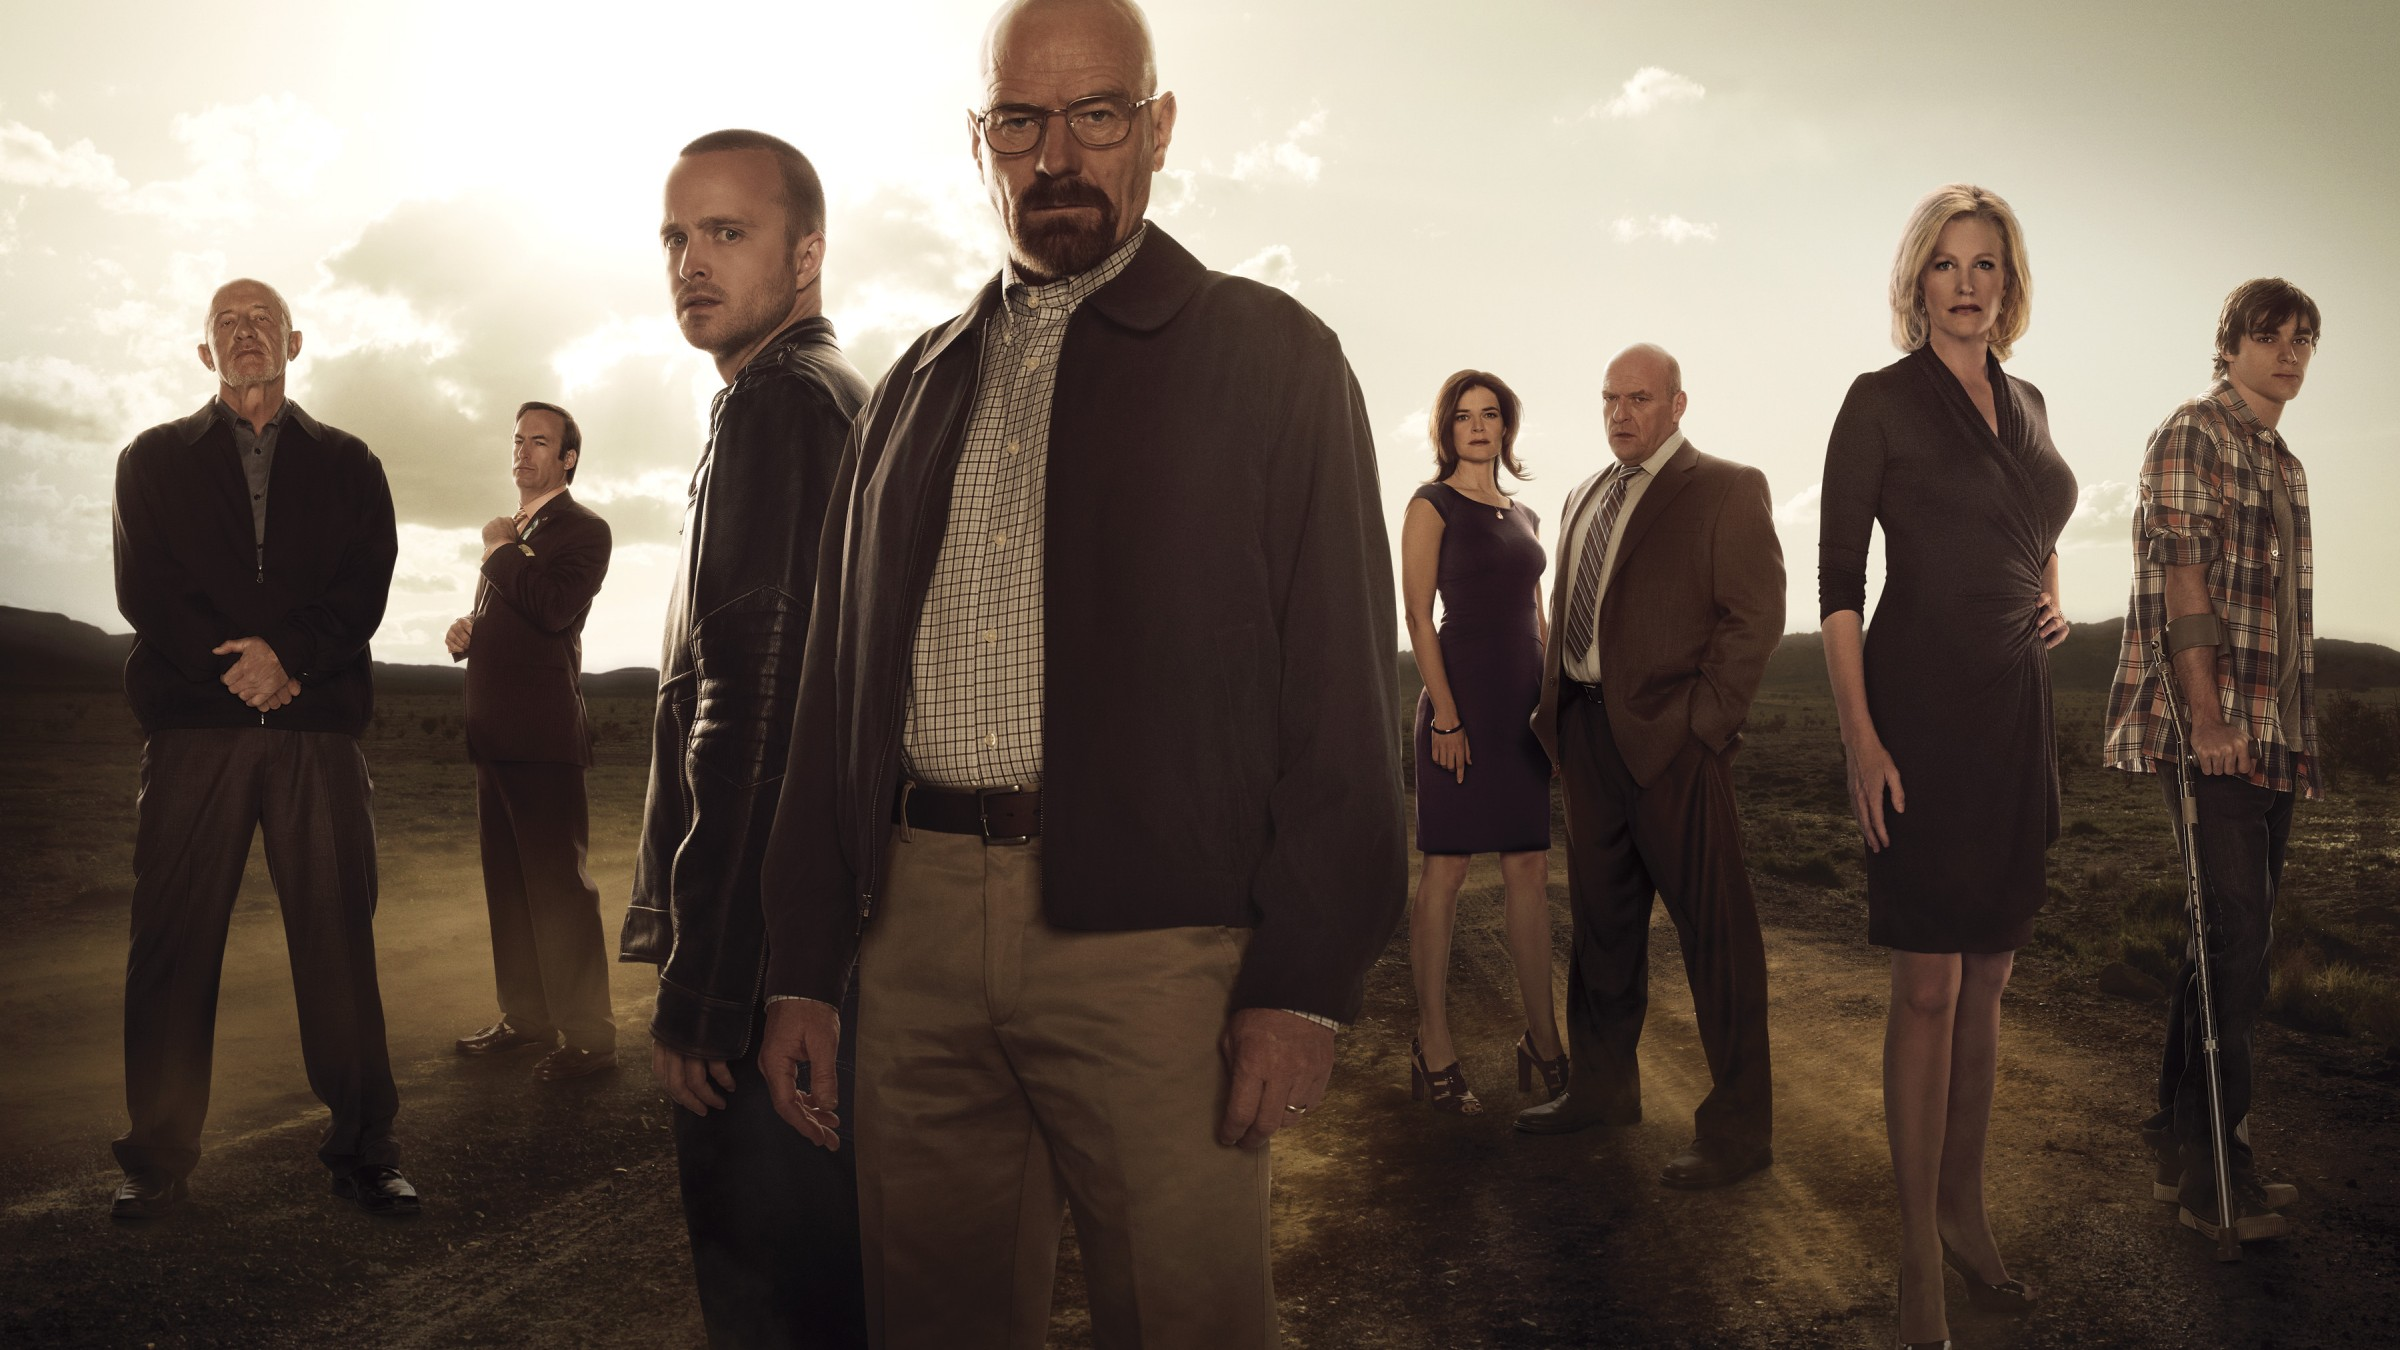 'Breaking Bad' Creators on Developing the Story of Walter White